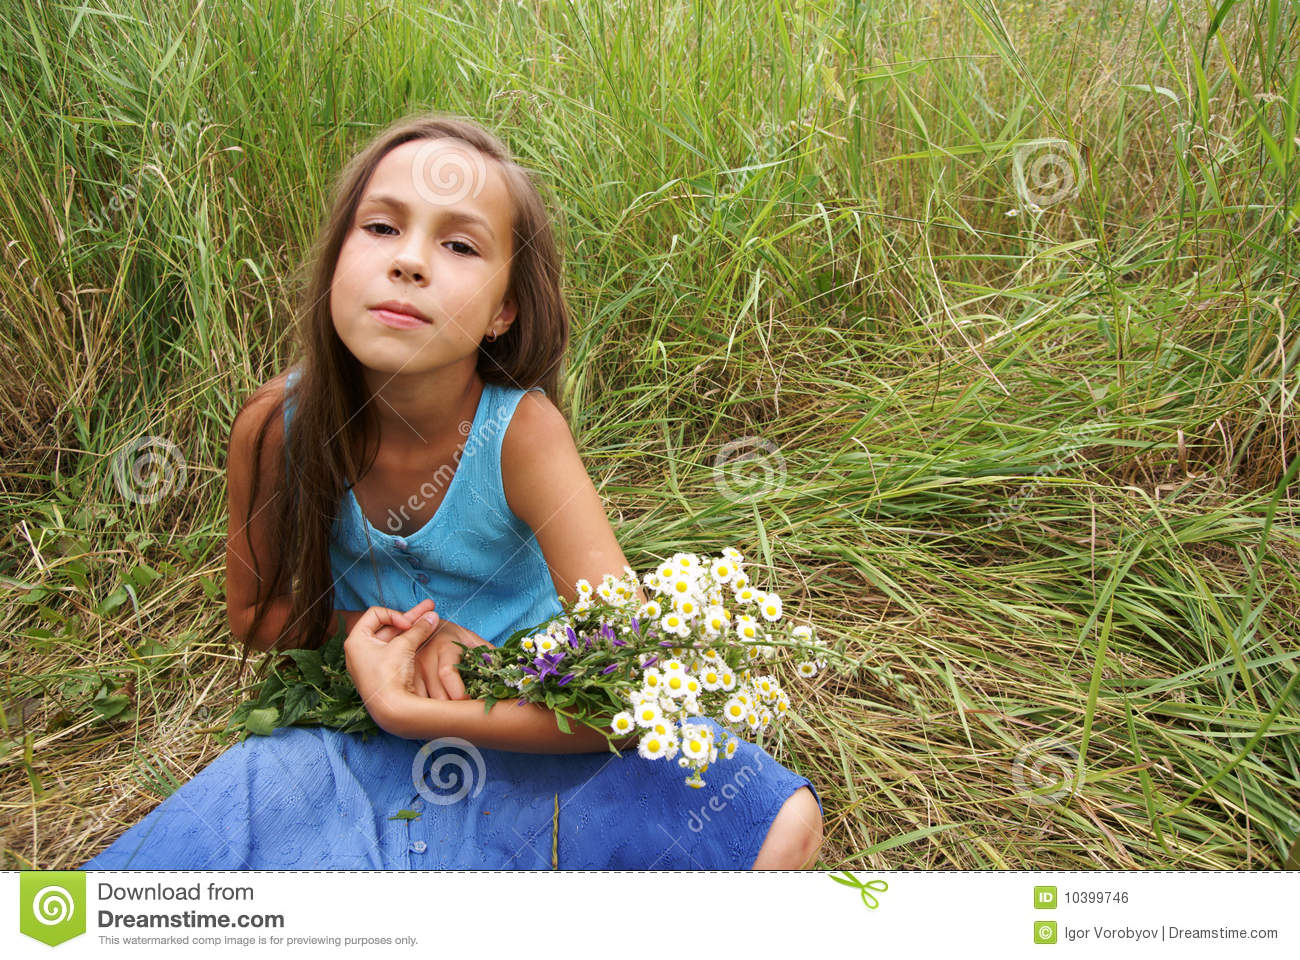 Preteen Girl Grass Background Stock Images - Download 452